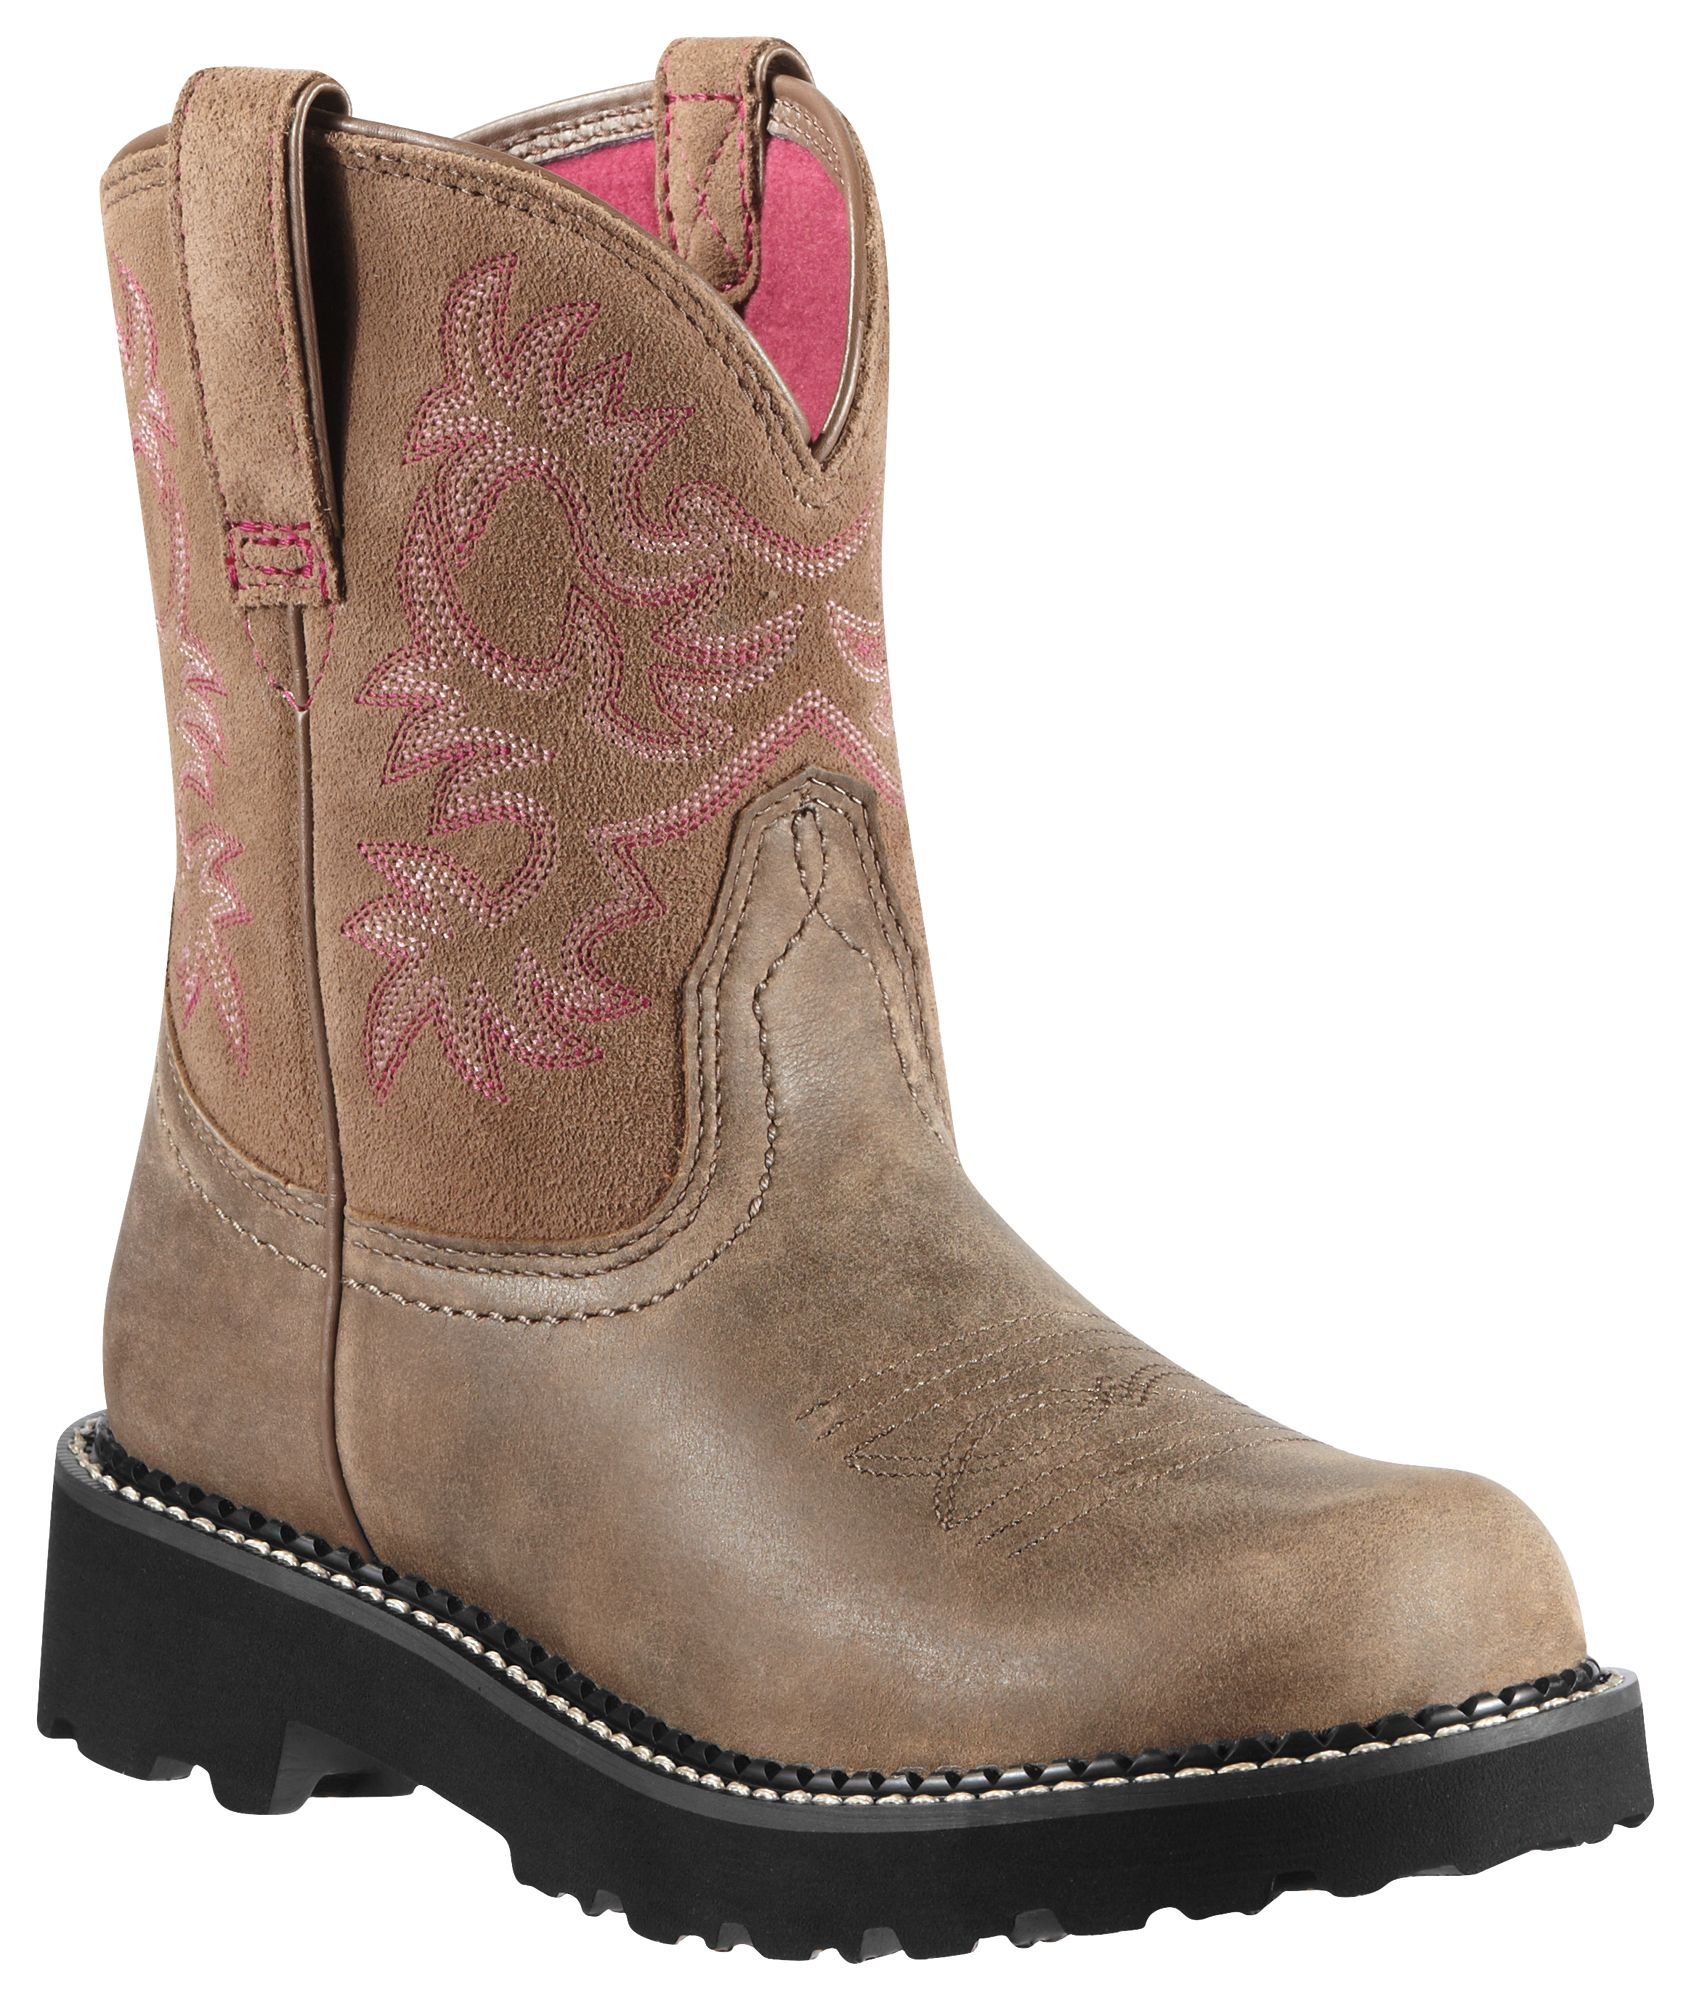 Ariat Boots For Women Clearance - Boot Hto